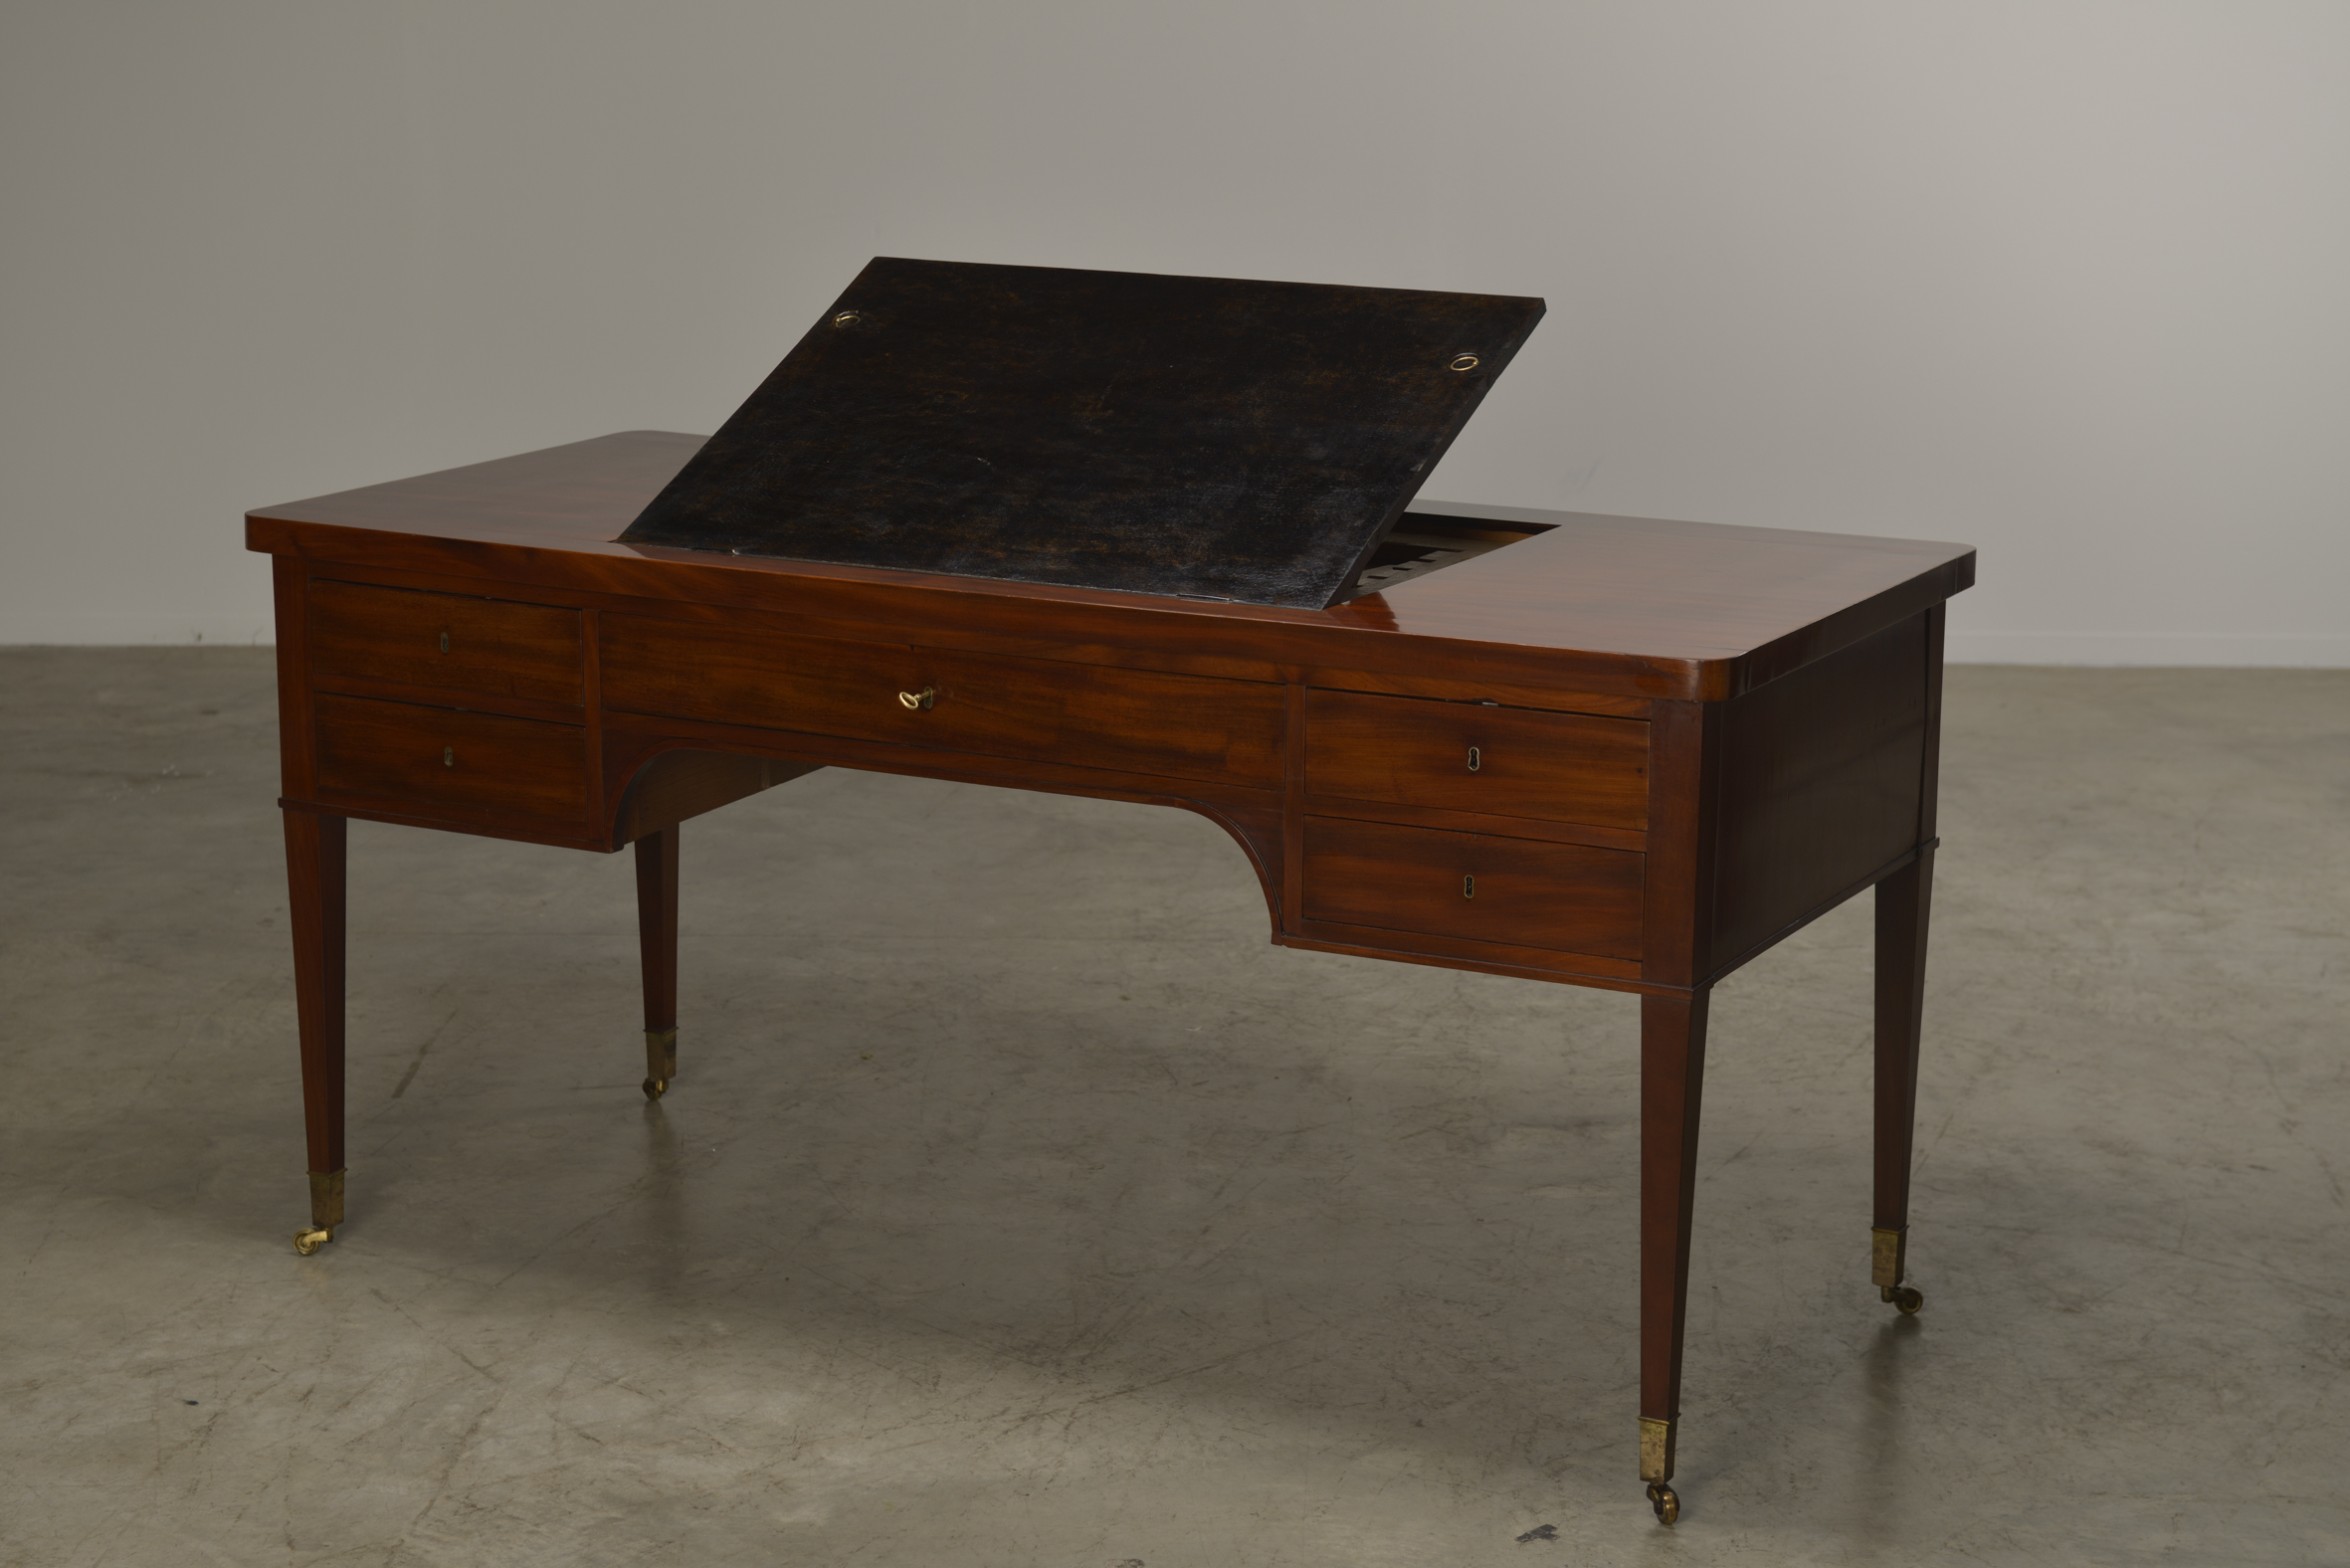 Danish Architects or reading desk in mahogany from Christiansborg Slot, Copenhagen, Circa 1820-30